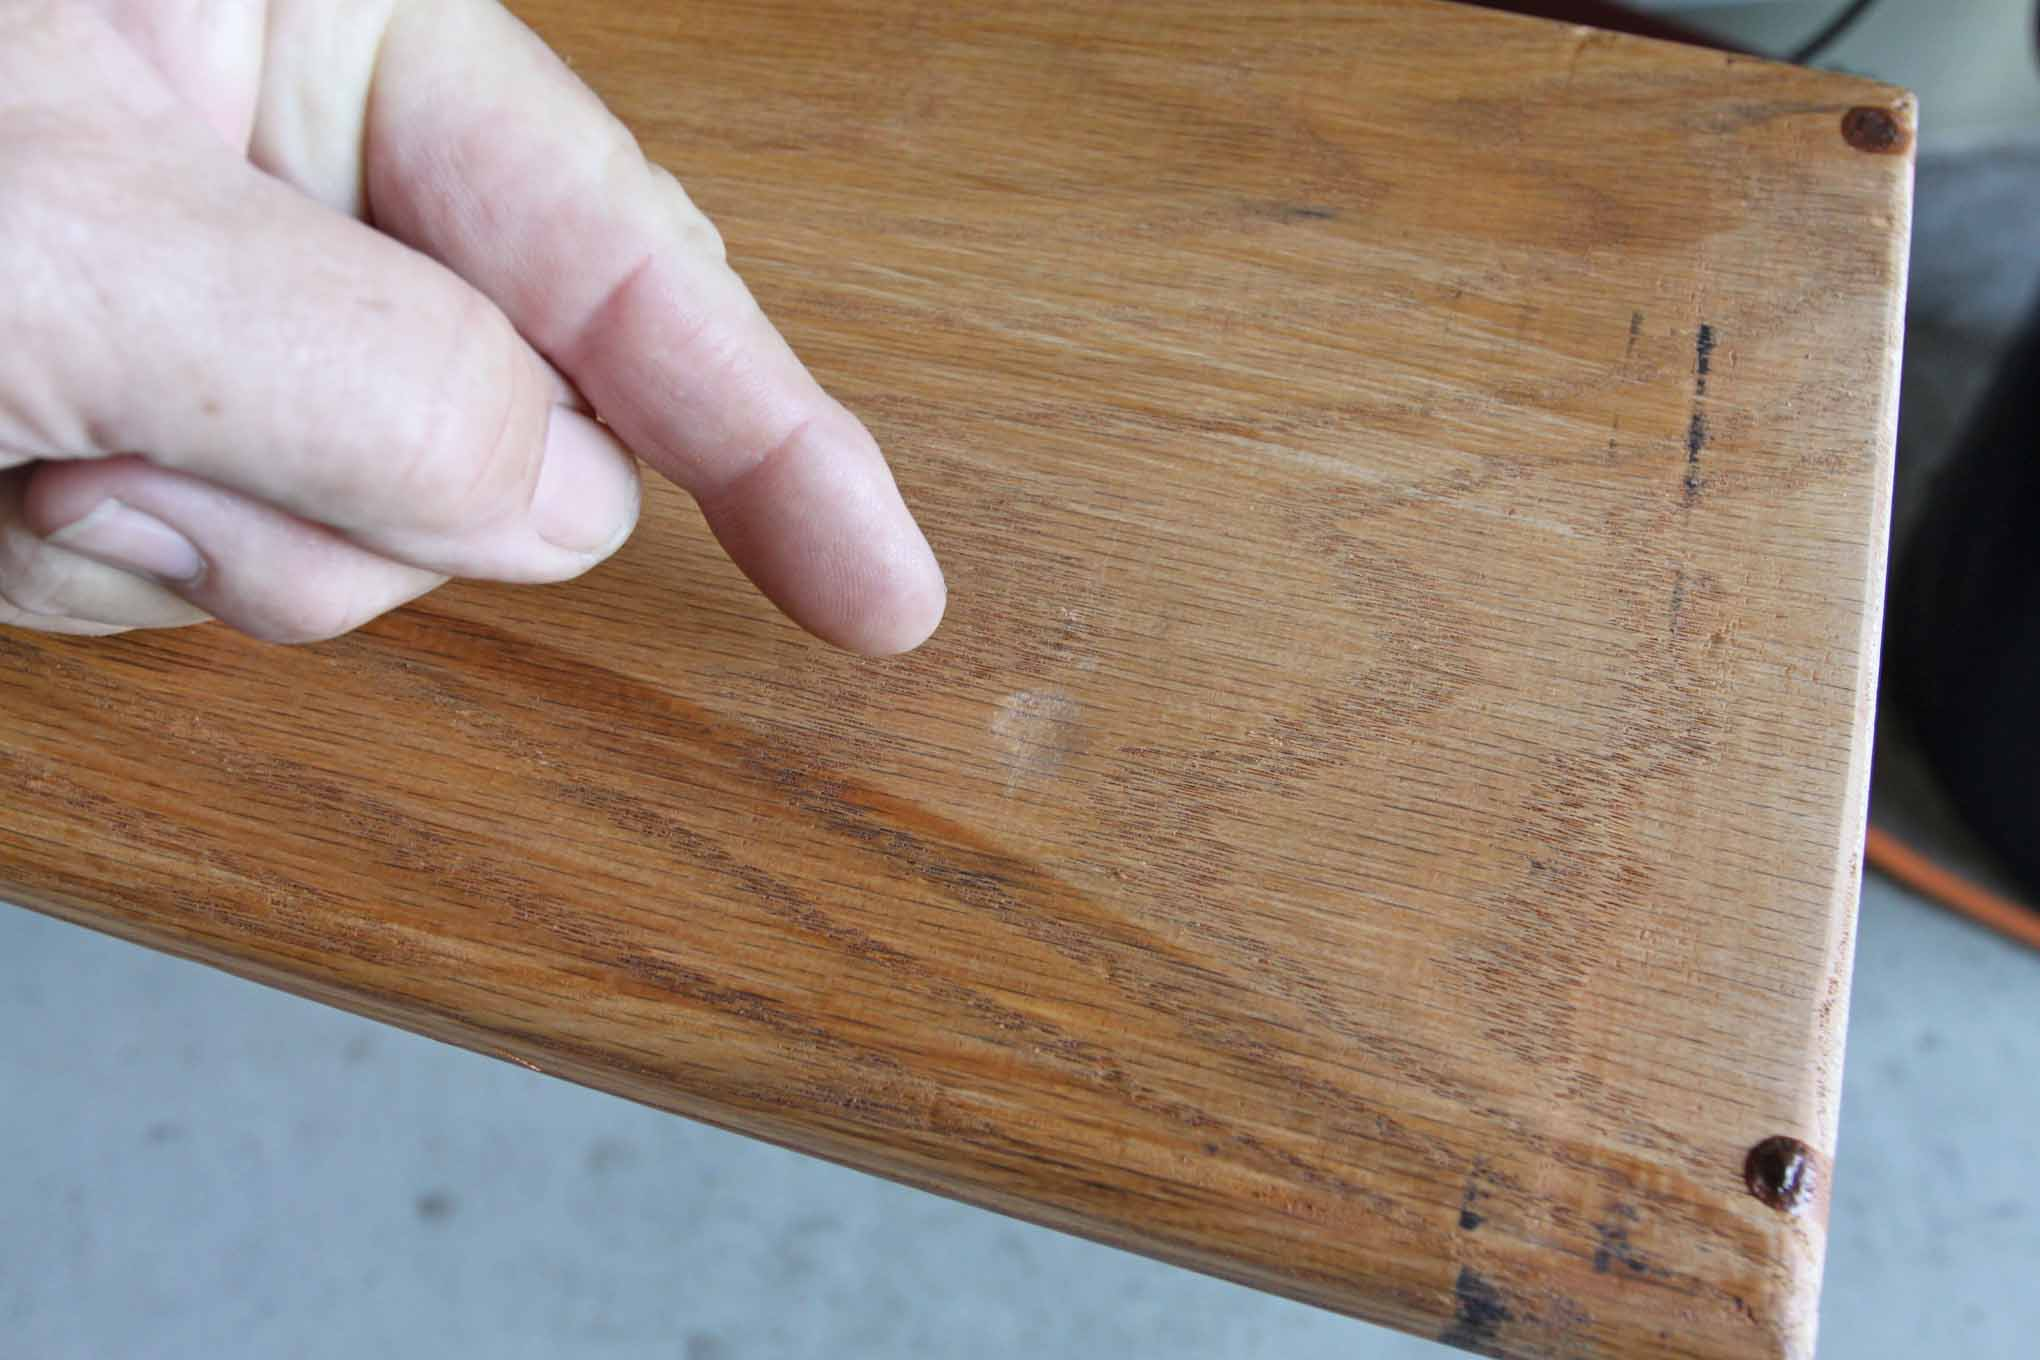 Here's a close-up of how the bed-mount bolt head impression should appear. We drilled the hole, bolted the plank down and hammered the other end to get its impression.